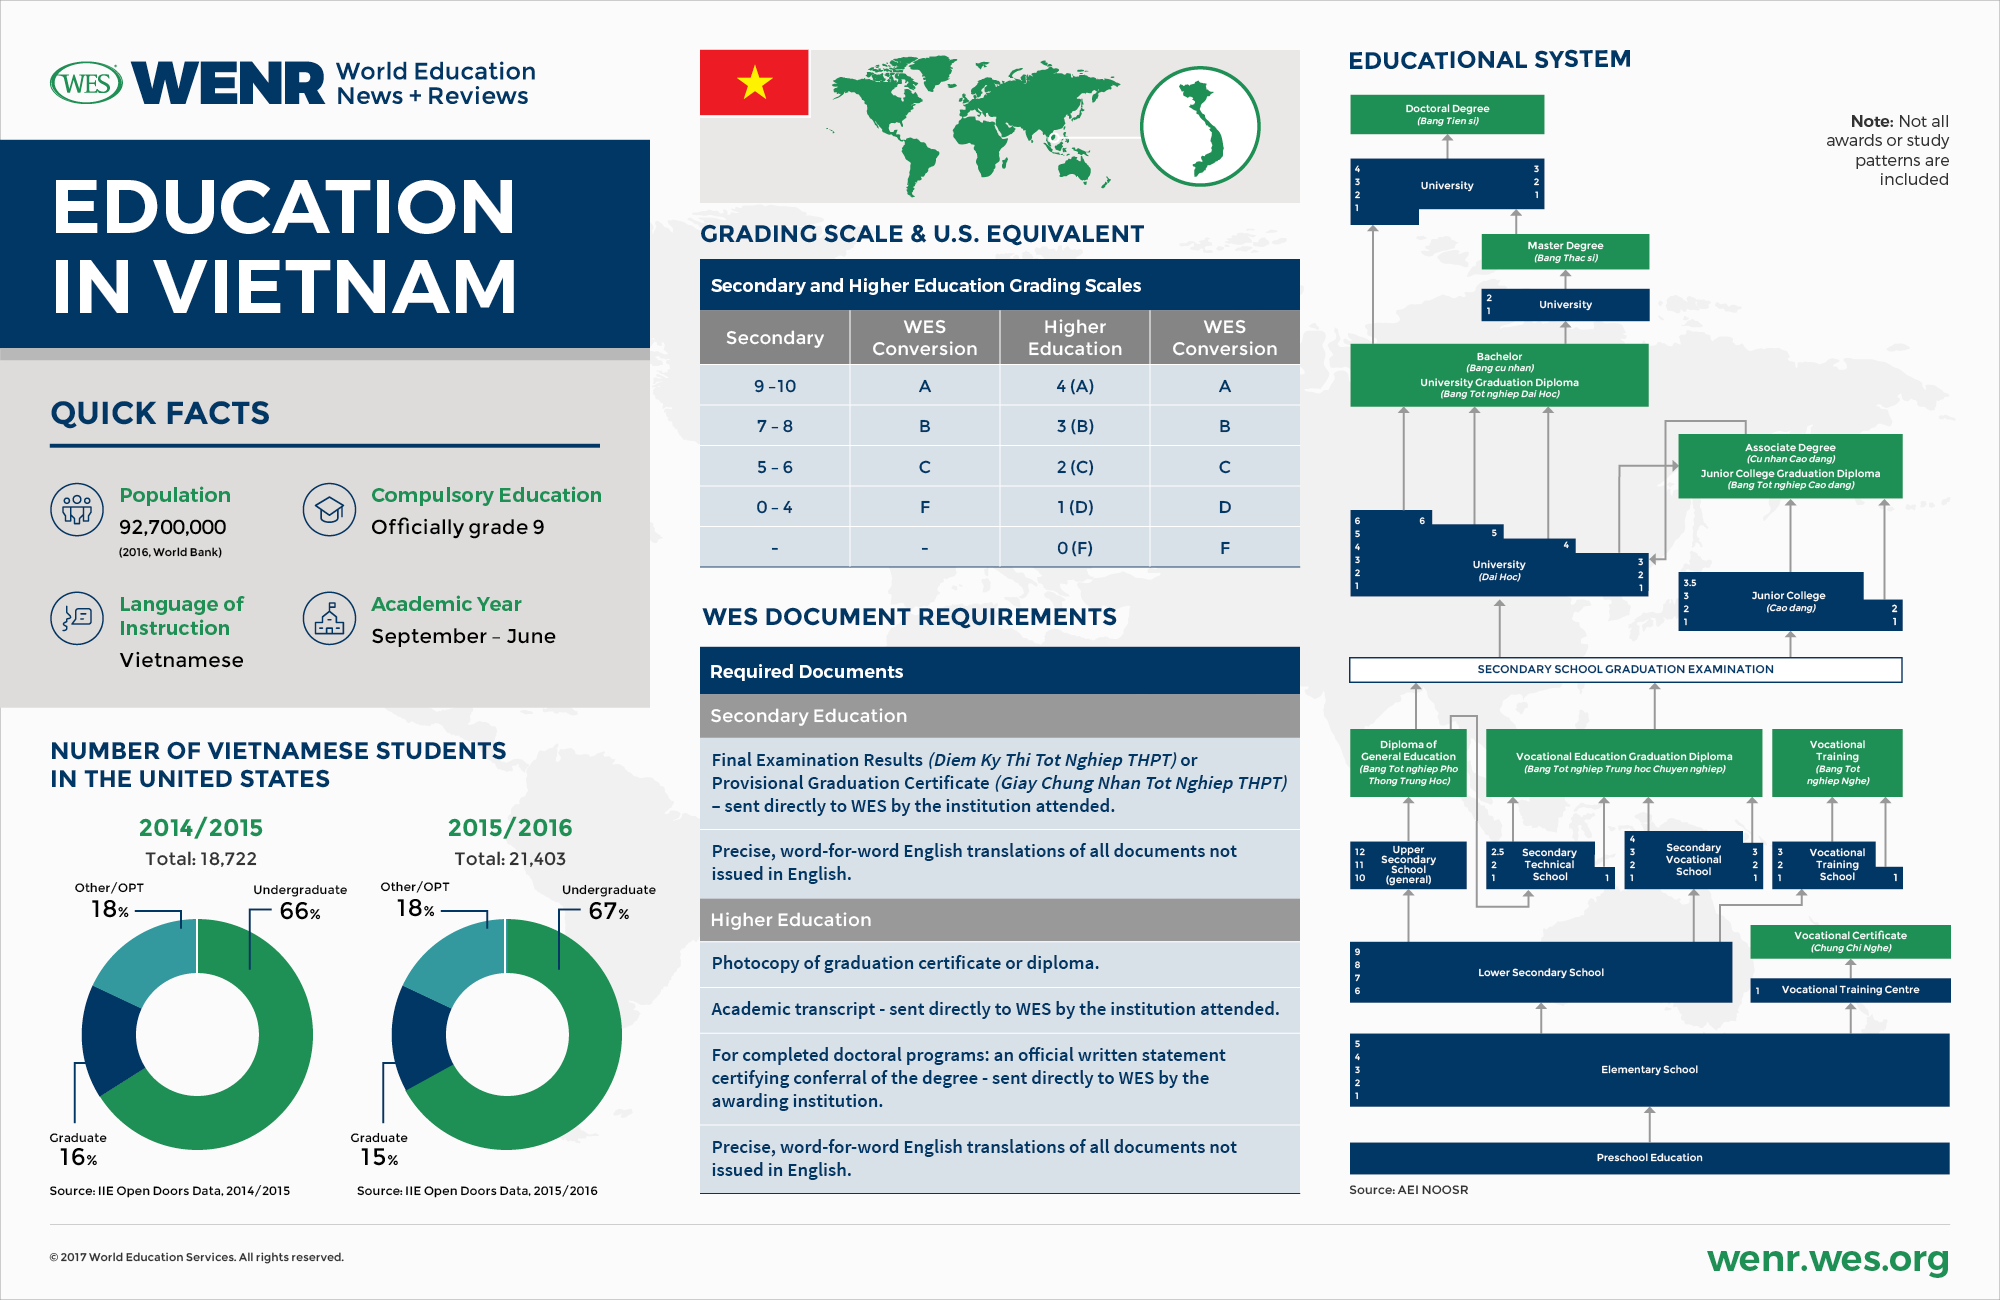 Education in Vietnam - Current Trends and Qualifications